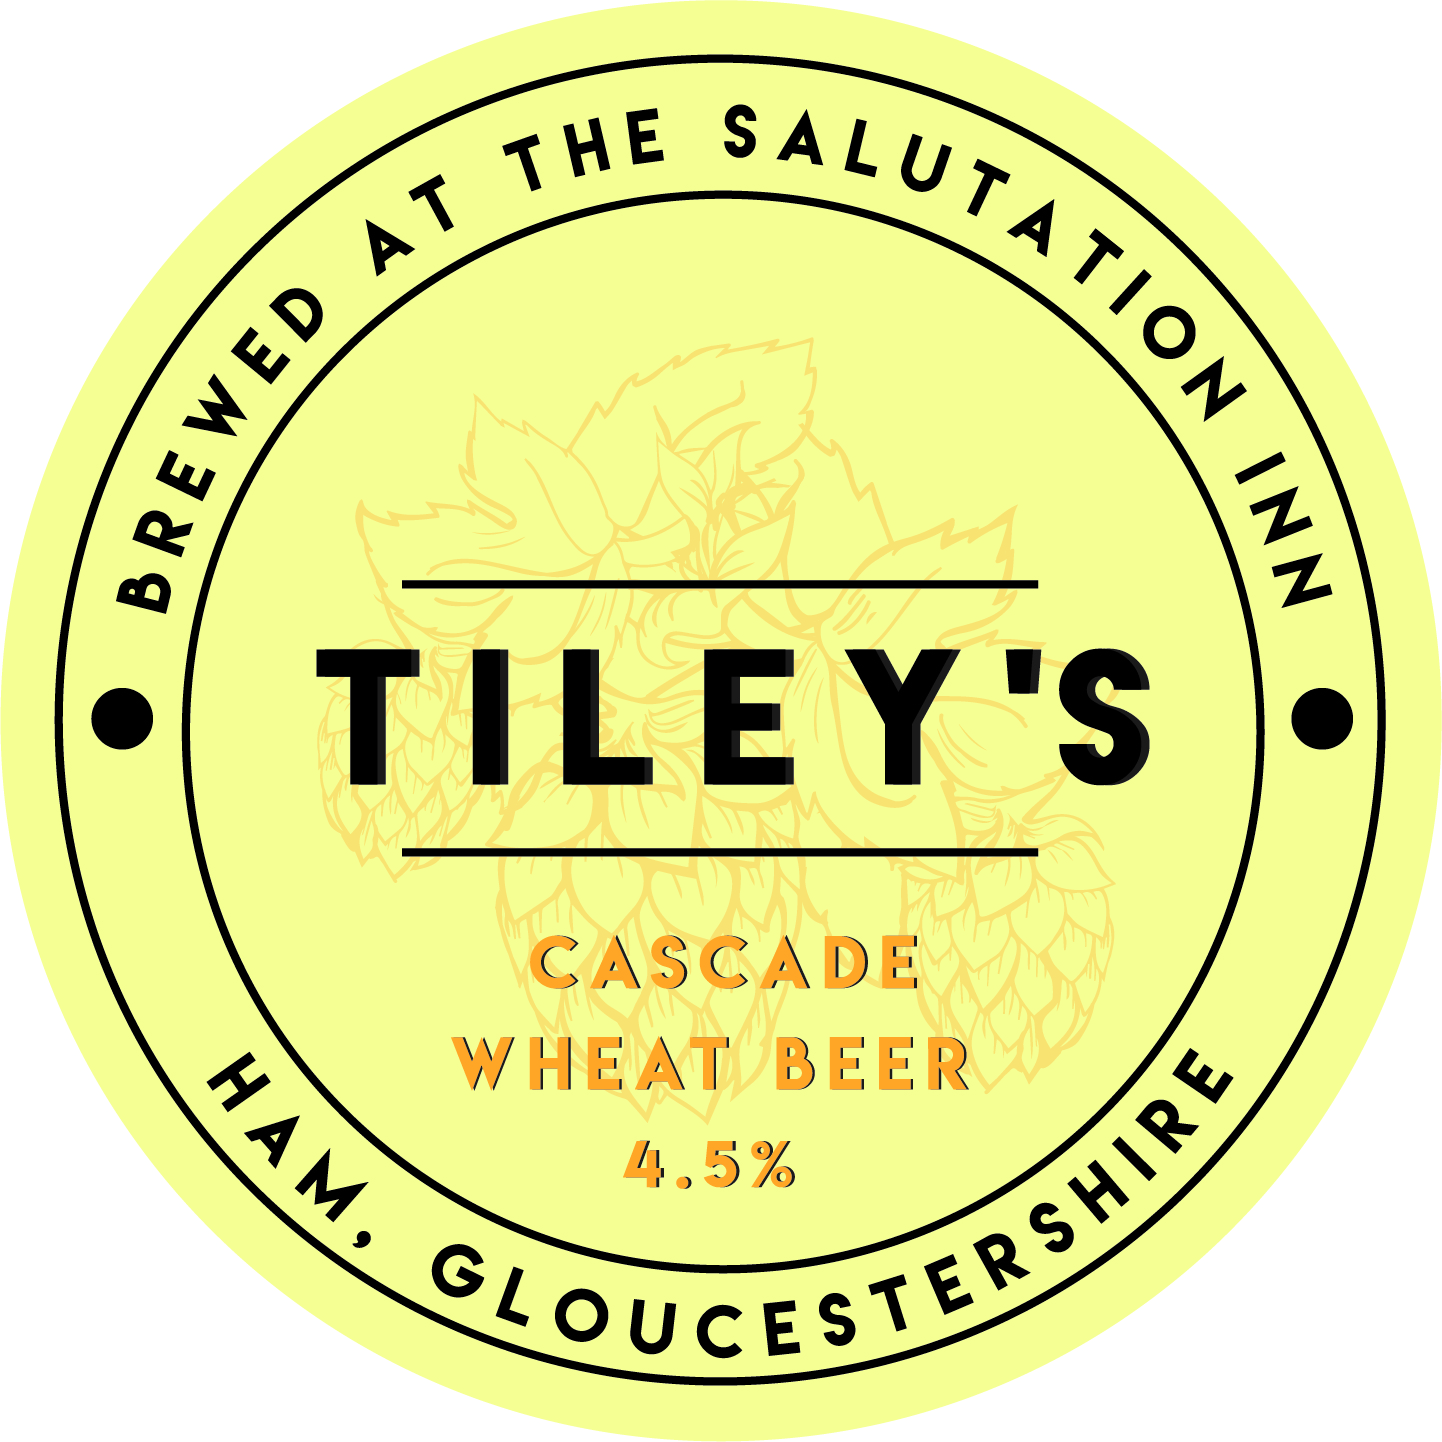 Tiley's Brewery Cascade Wheat Beer 4.5% Bag-in-Box